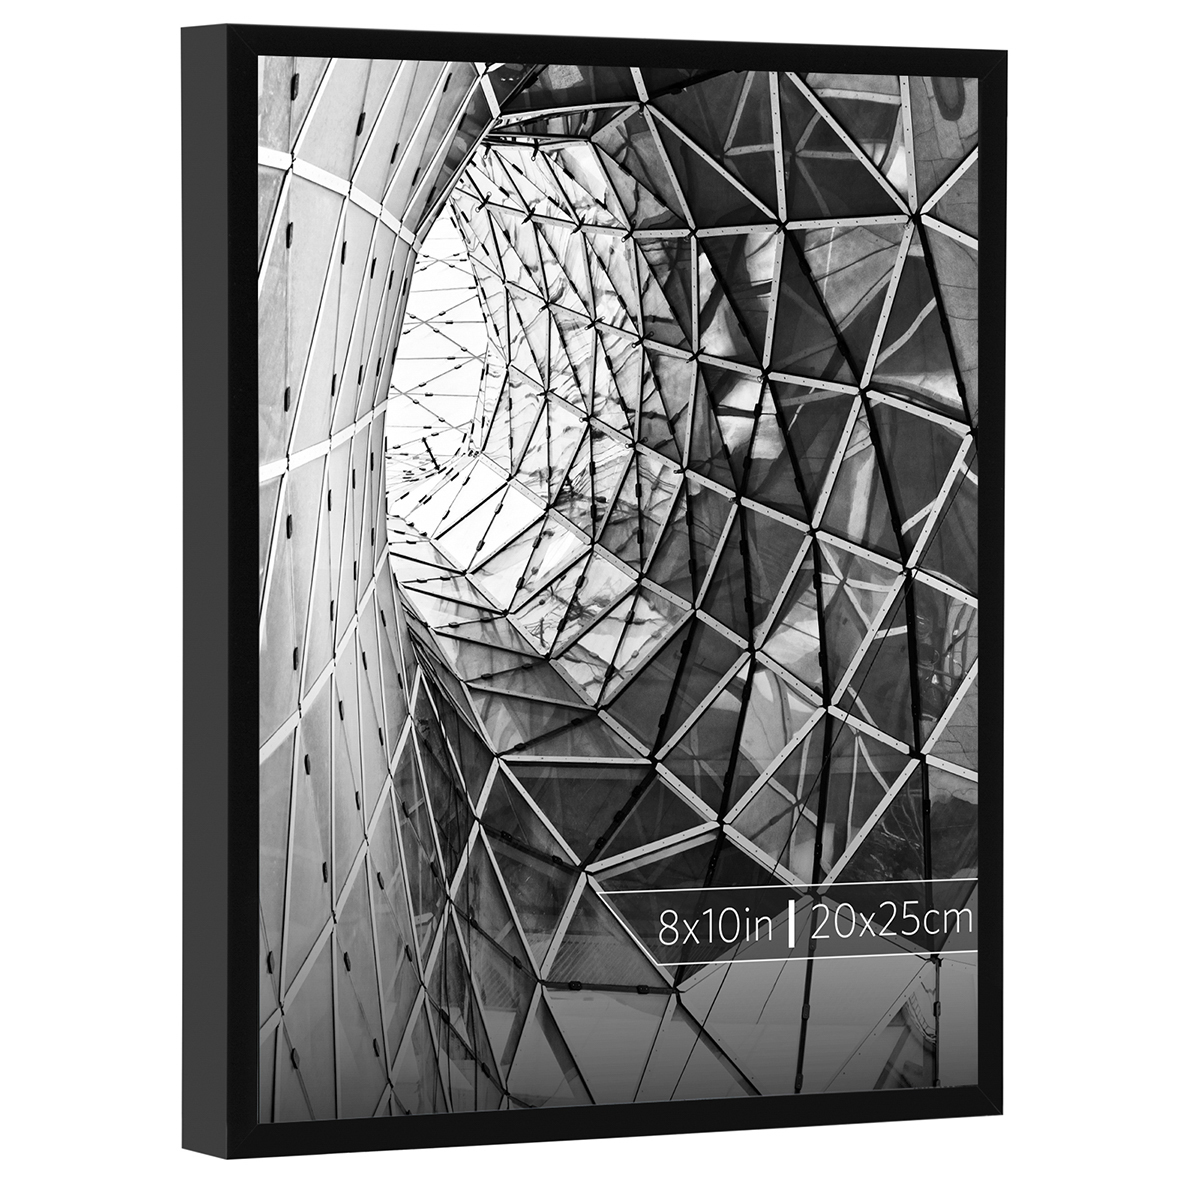 Burnes of Boston 8x10 Aluminum Gallery Frame in Smooth Black Finish